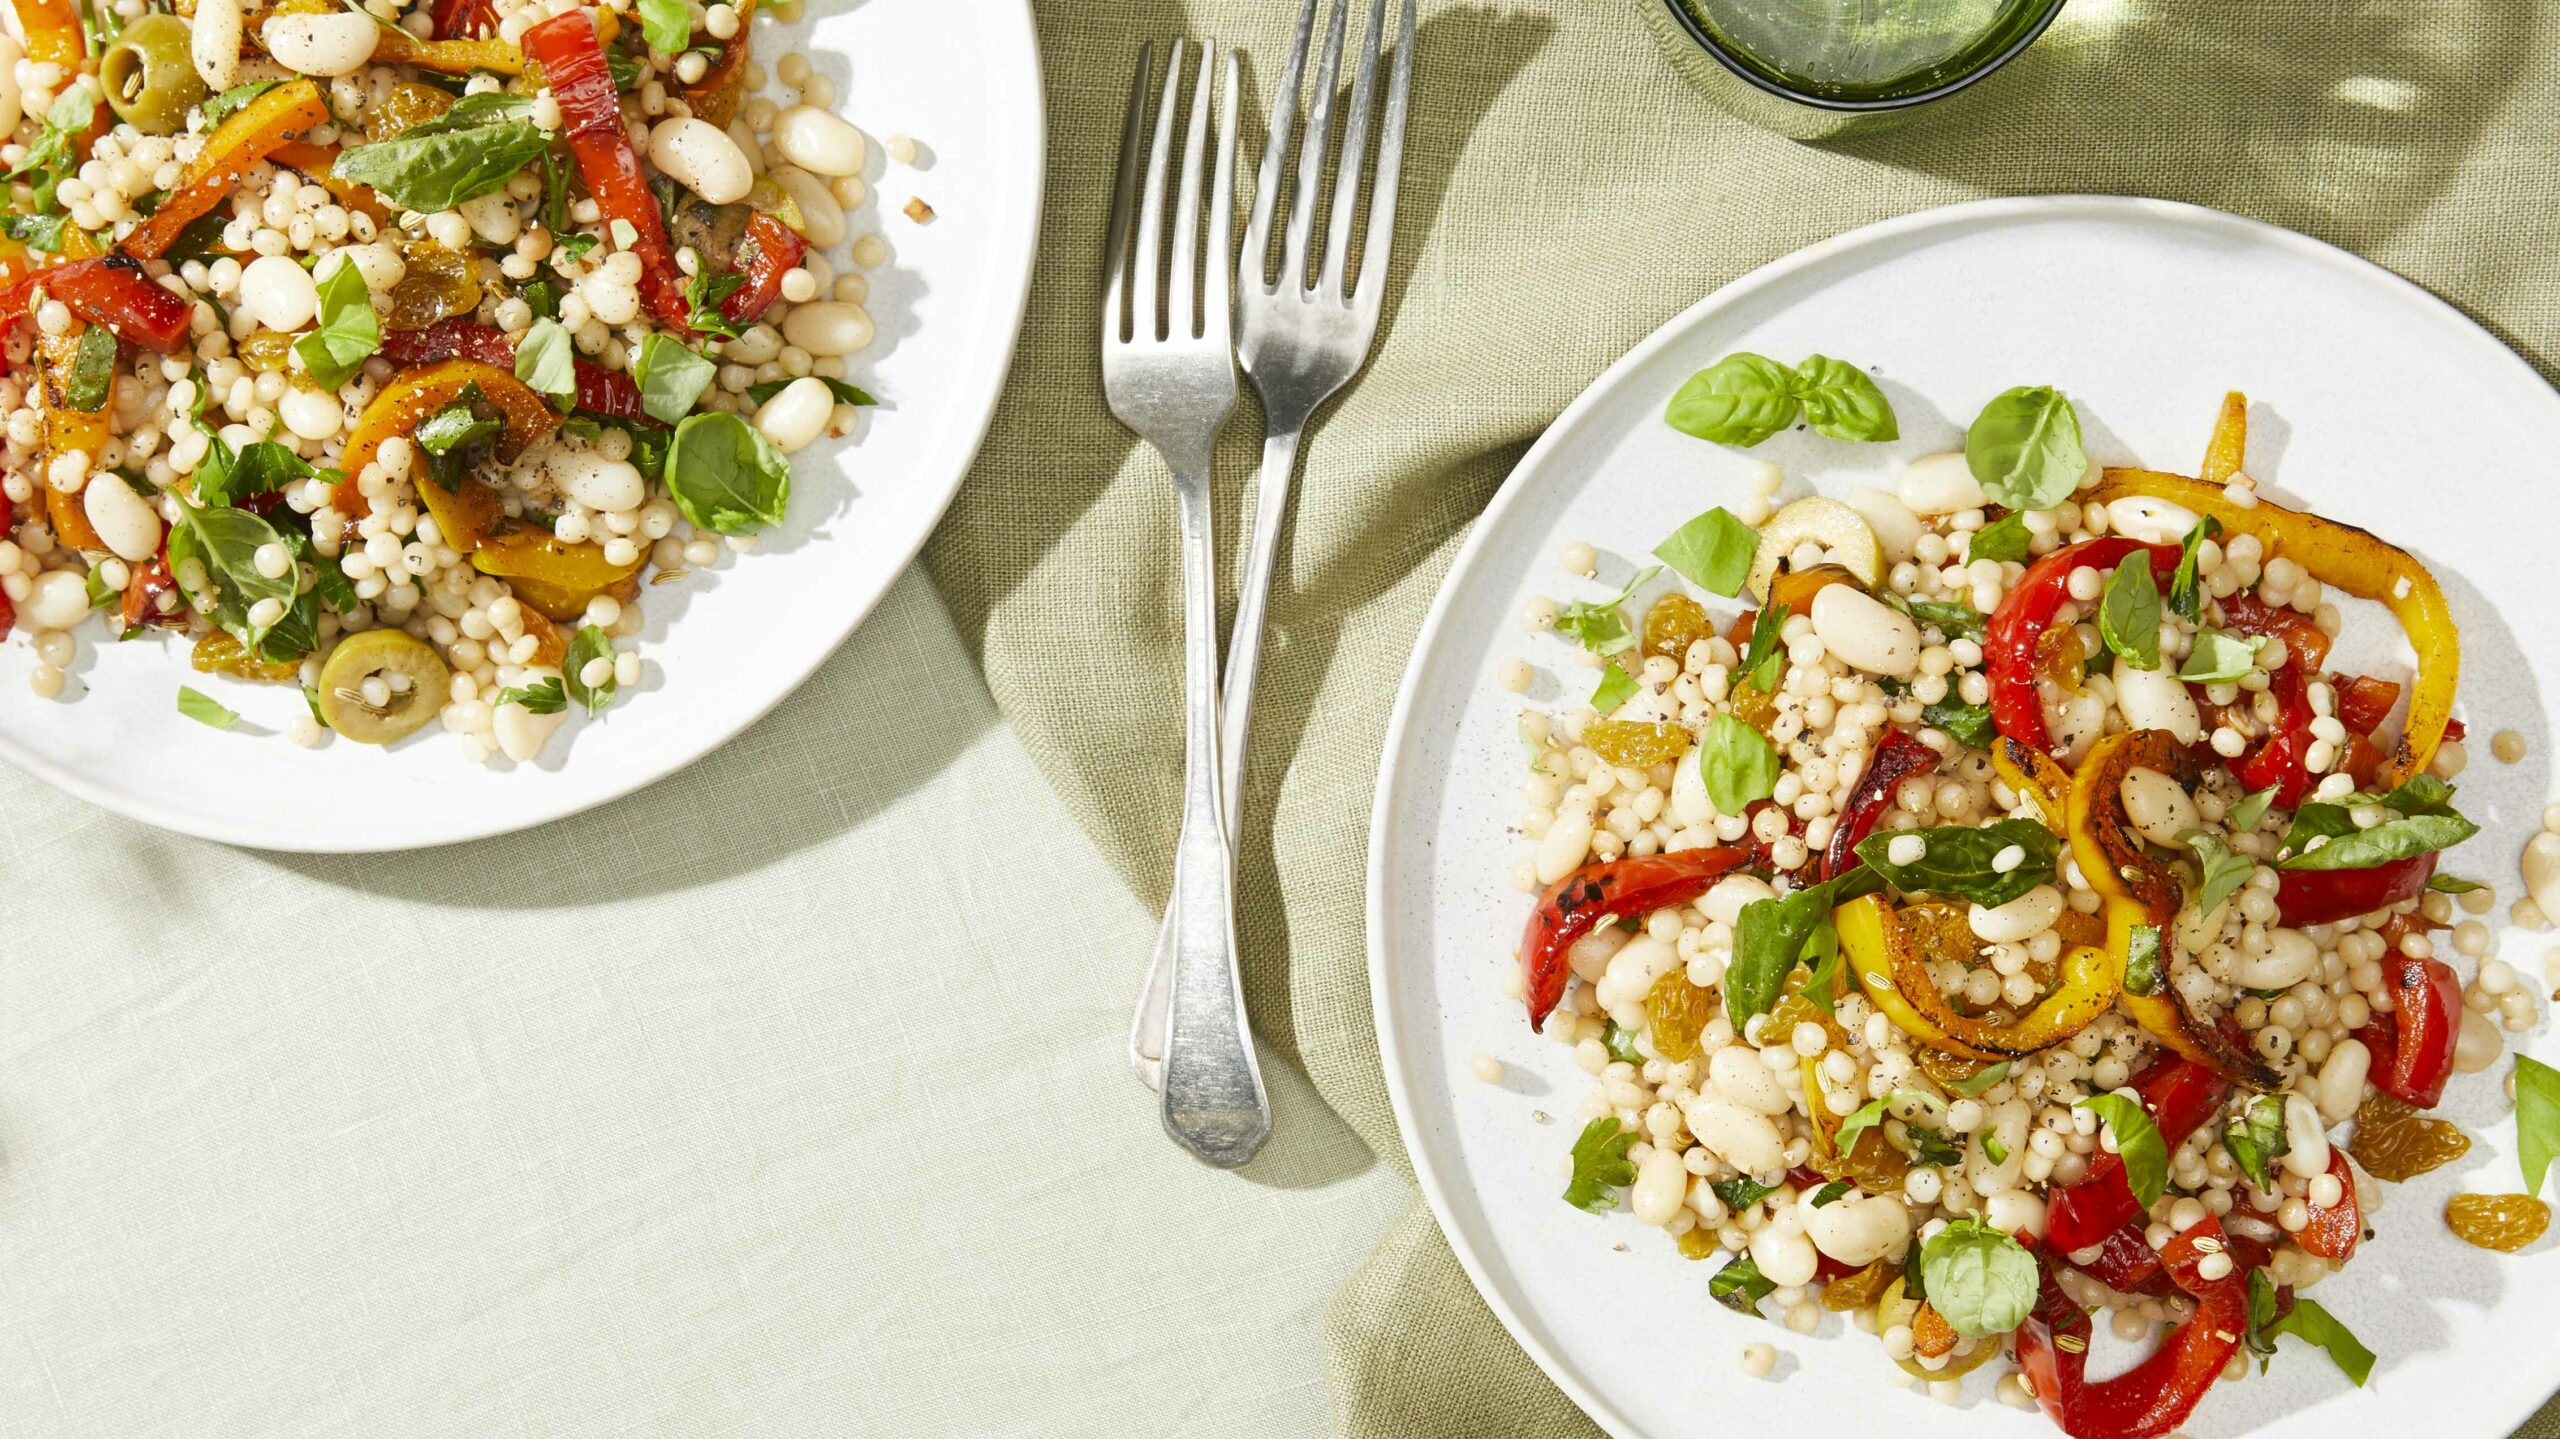 Marinated Pepper Salad with Cannellini Beans, Couscous, and Olives